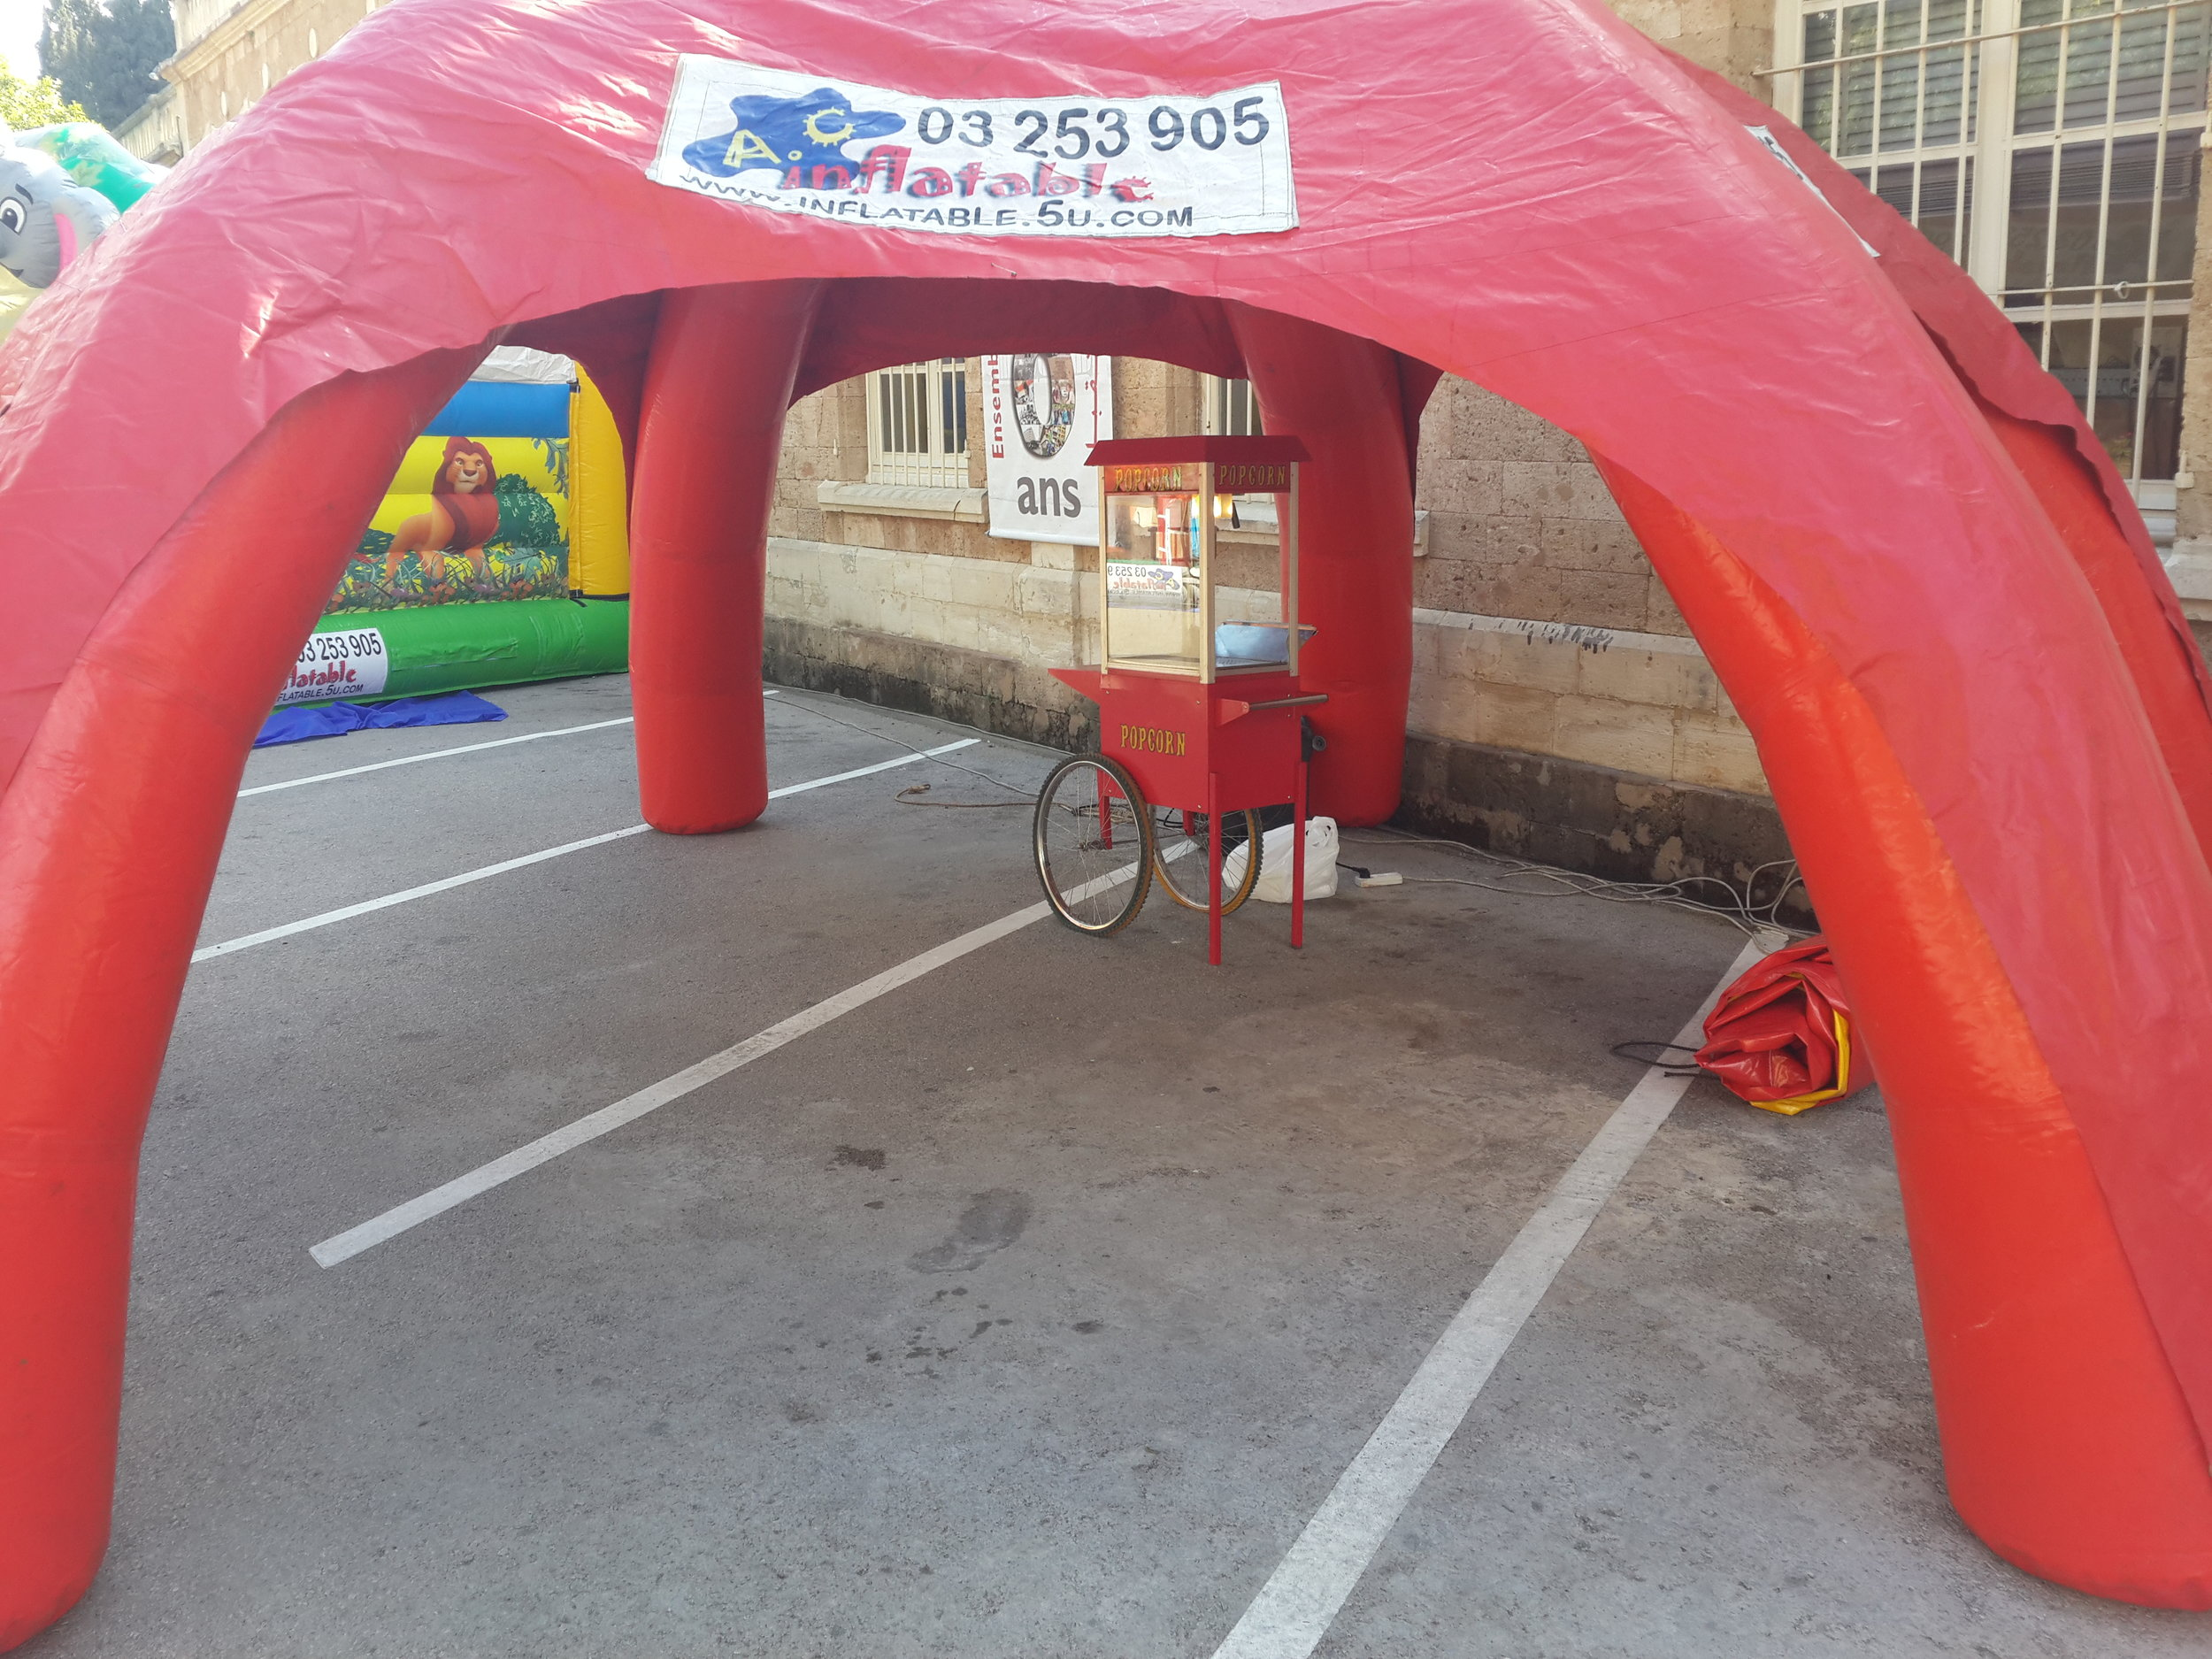 Red Tent for Decoration and Festival Entrance